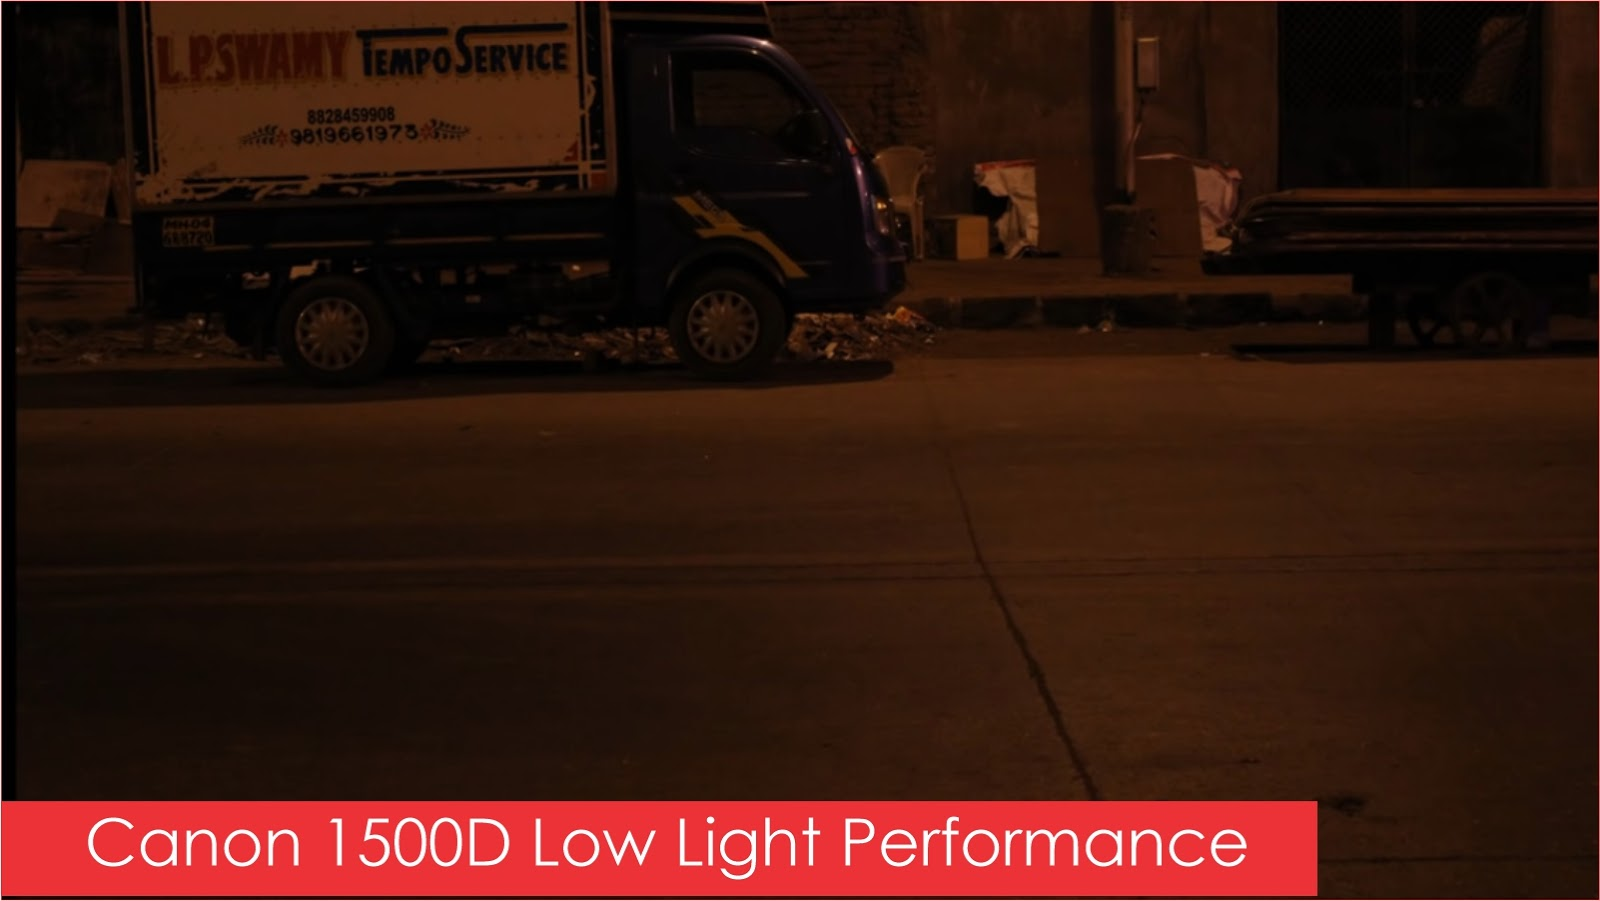 Canon 1500D Camera Low Light Image Performance